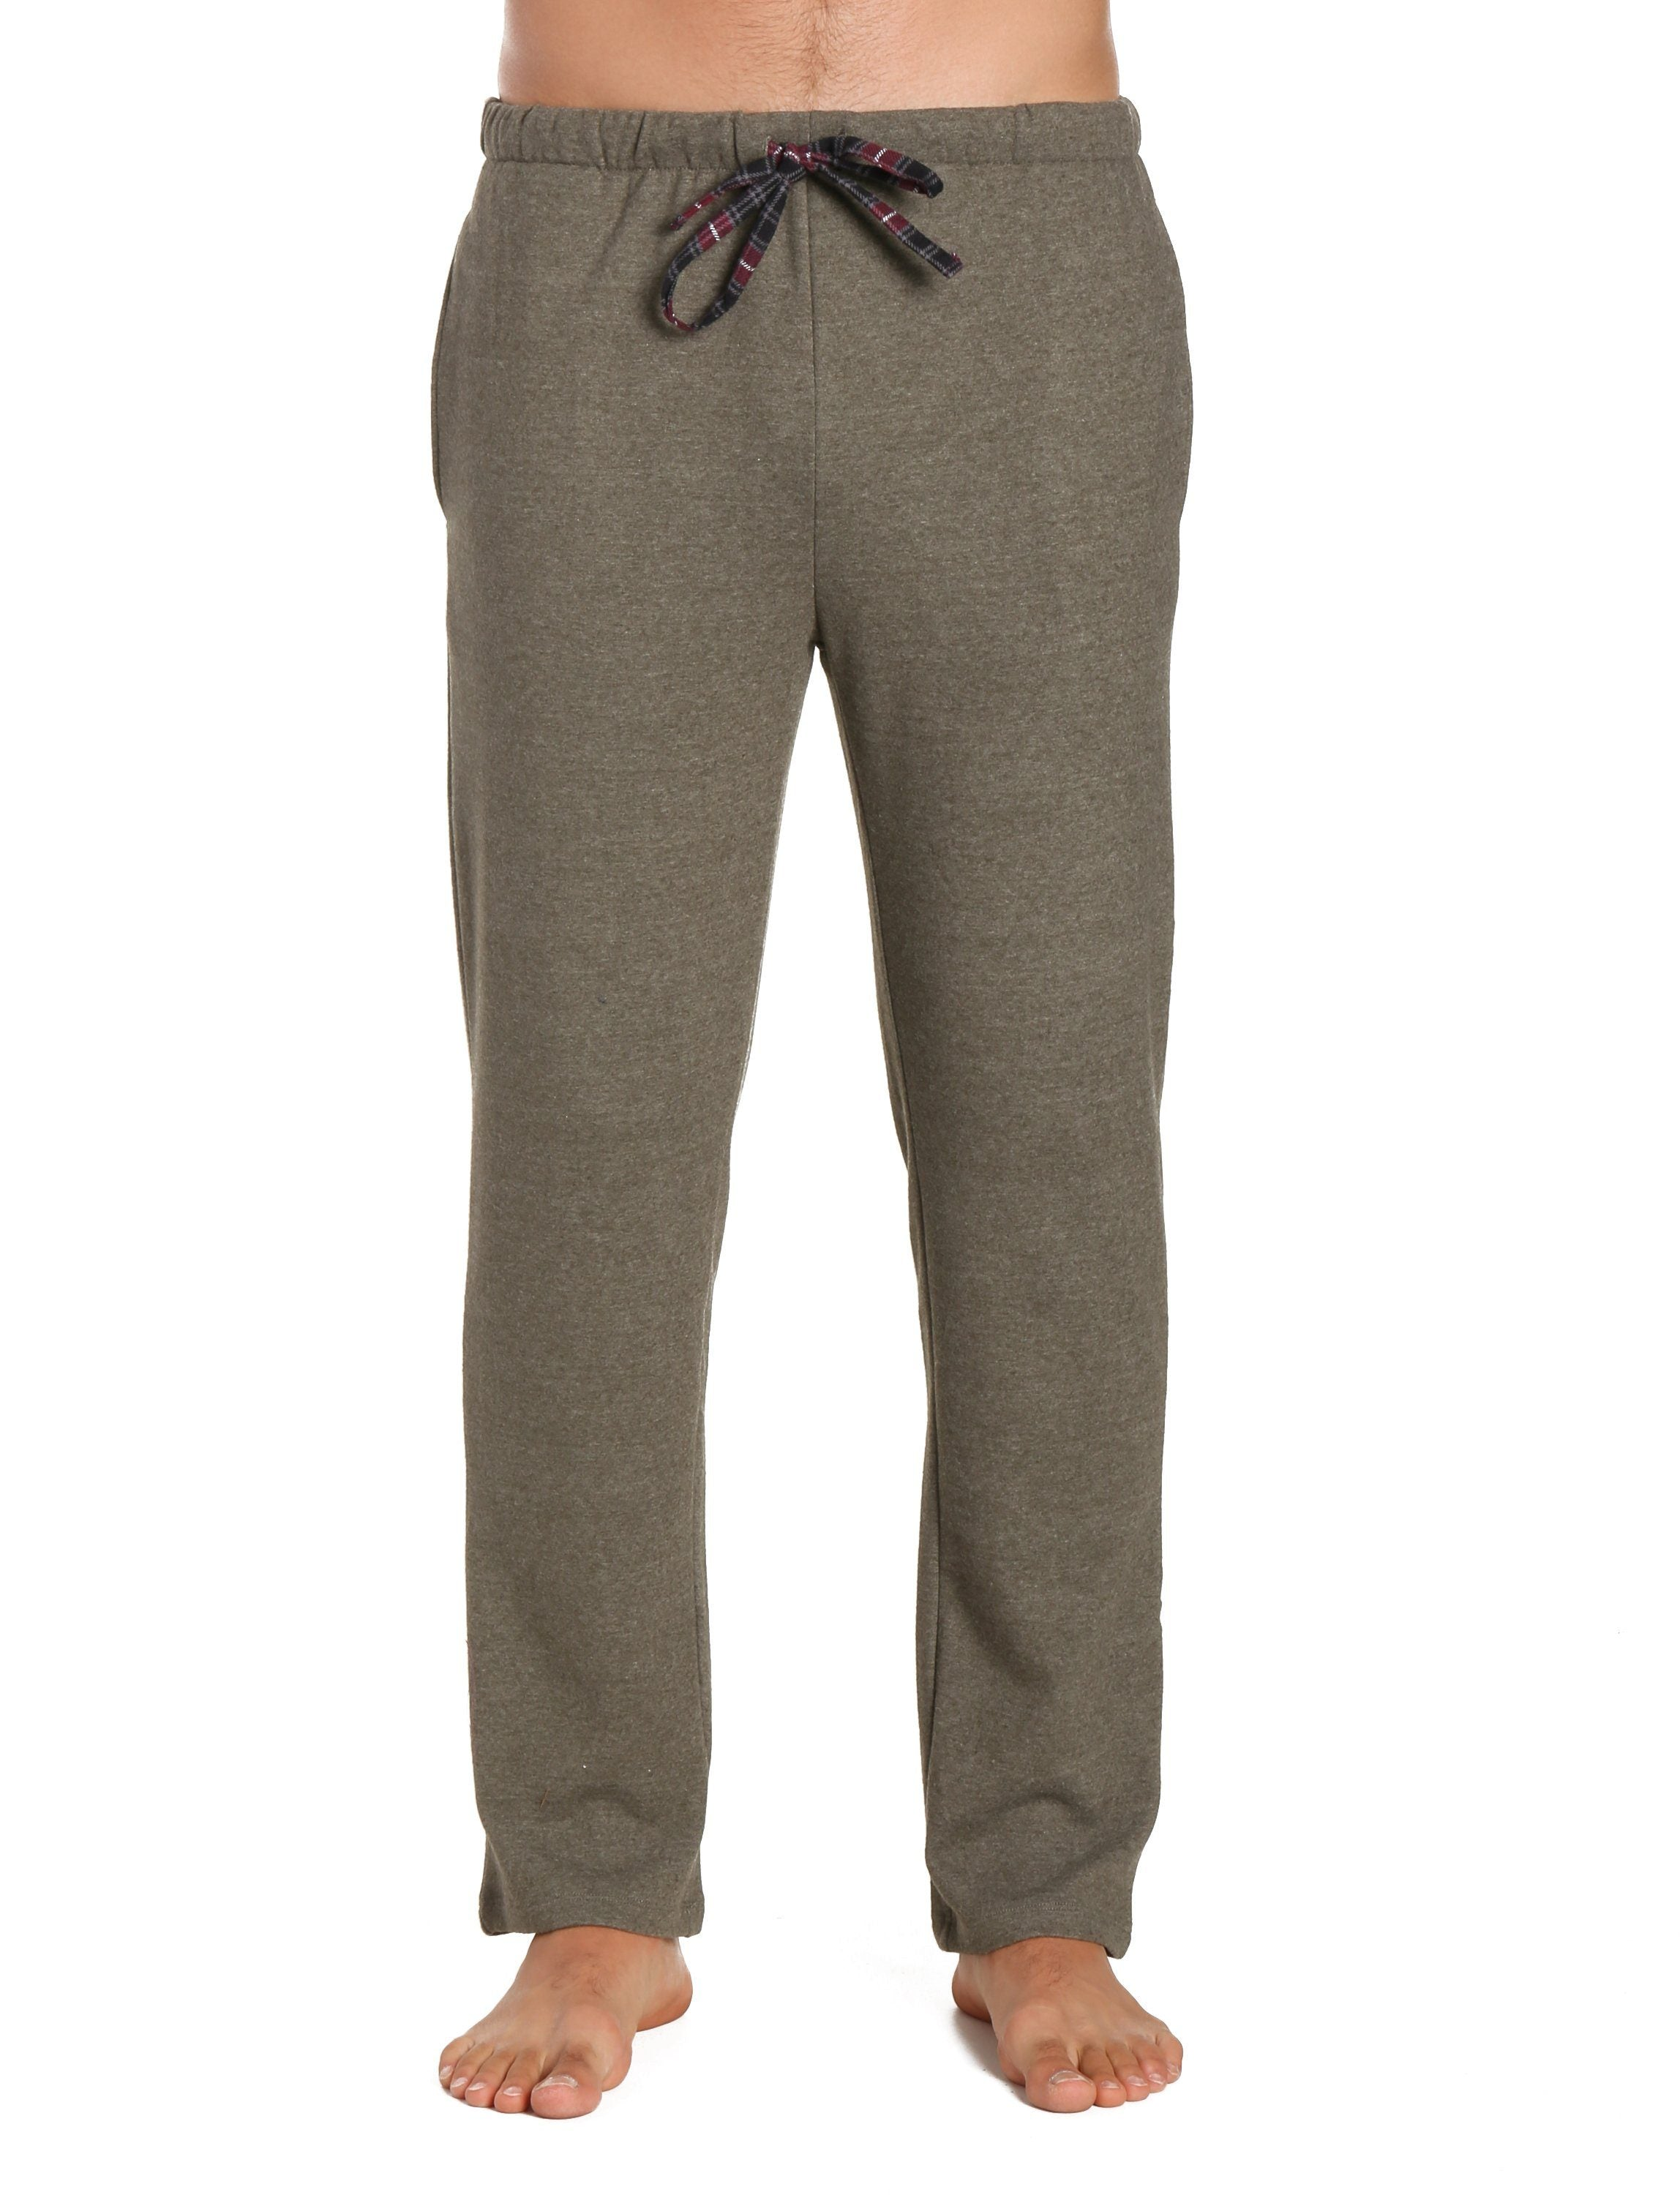 Men's Soft Brushed Rib Lounge Pant